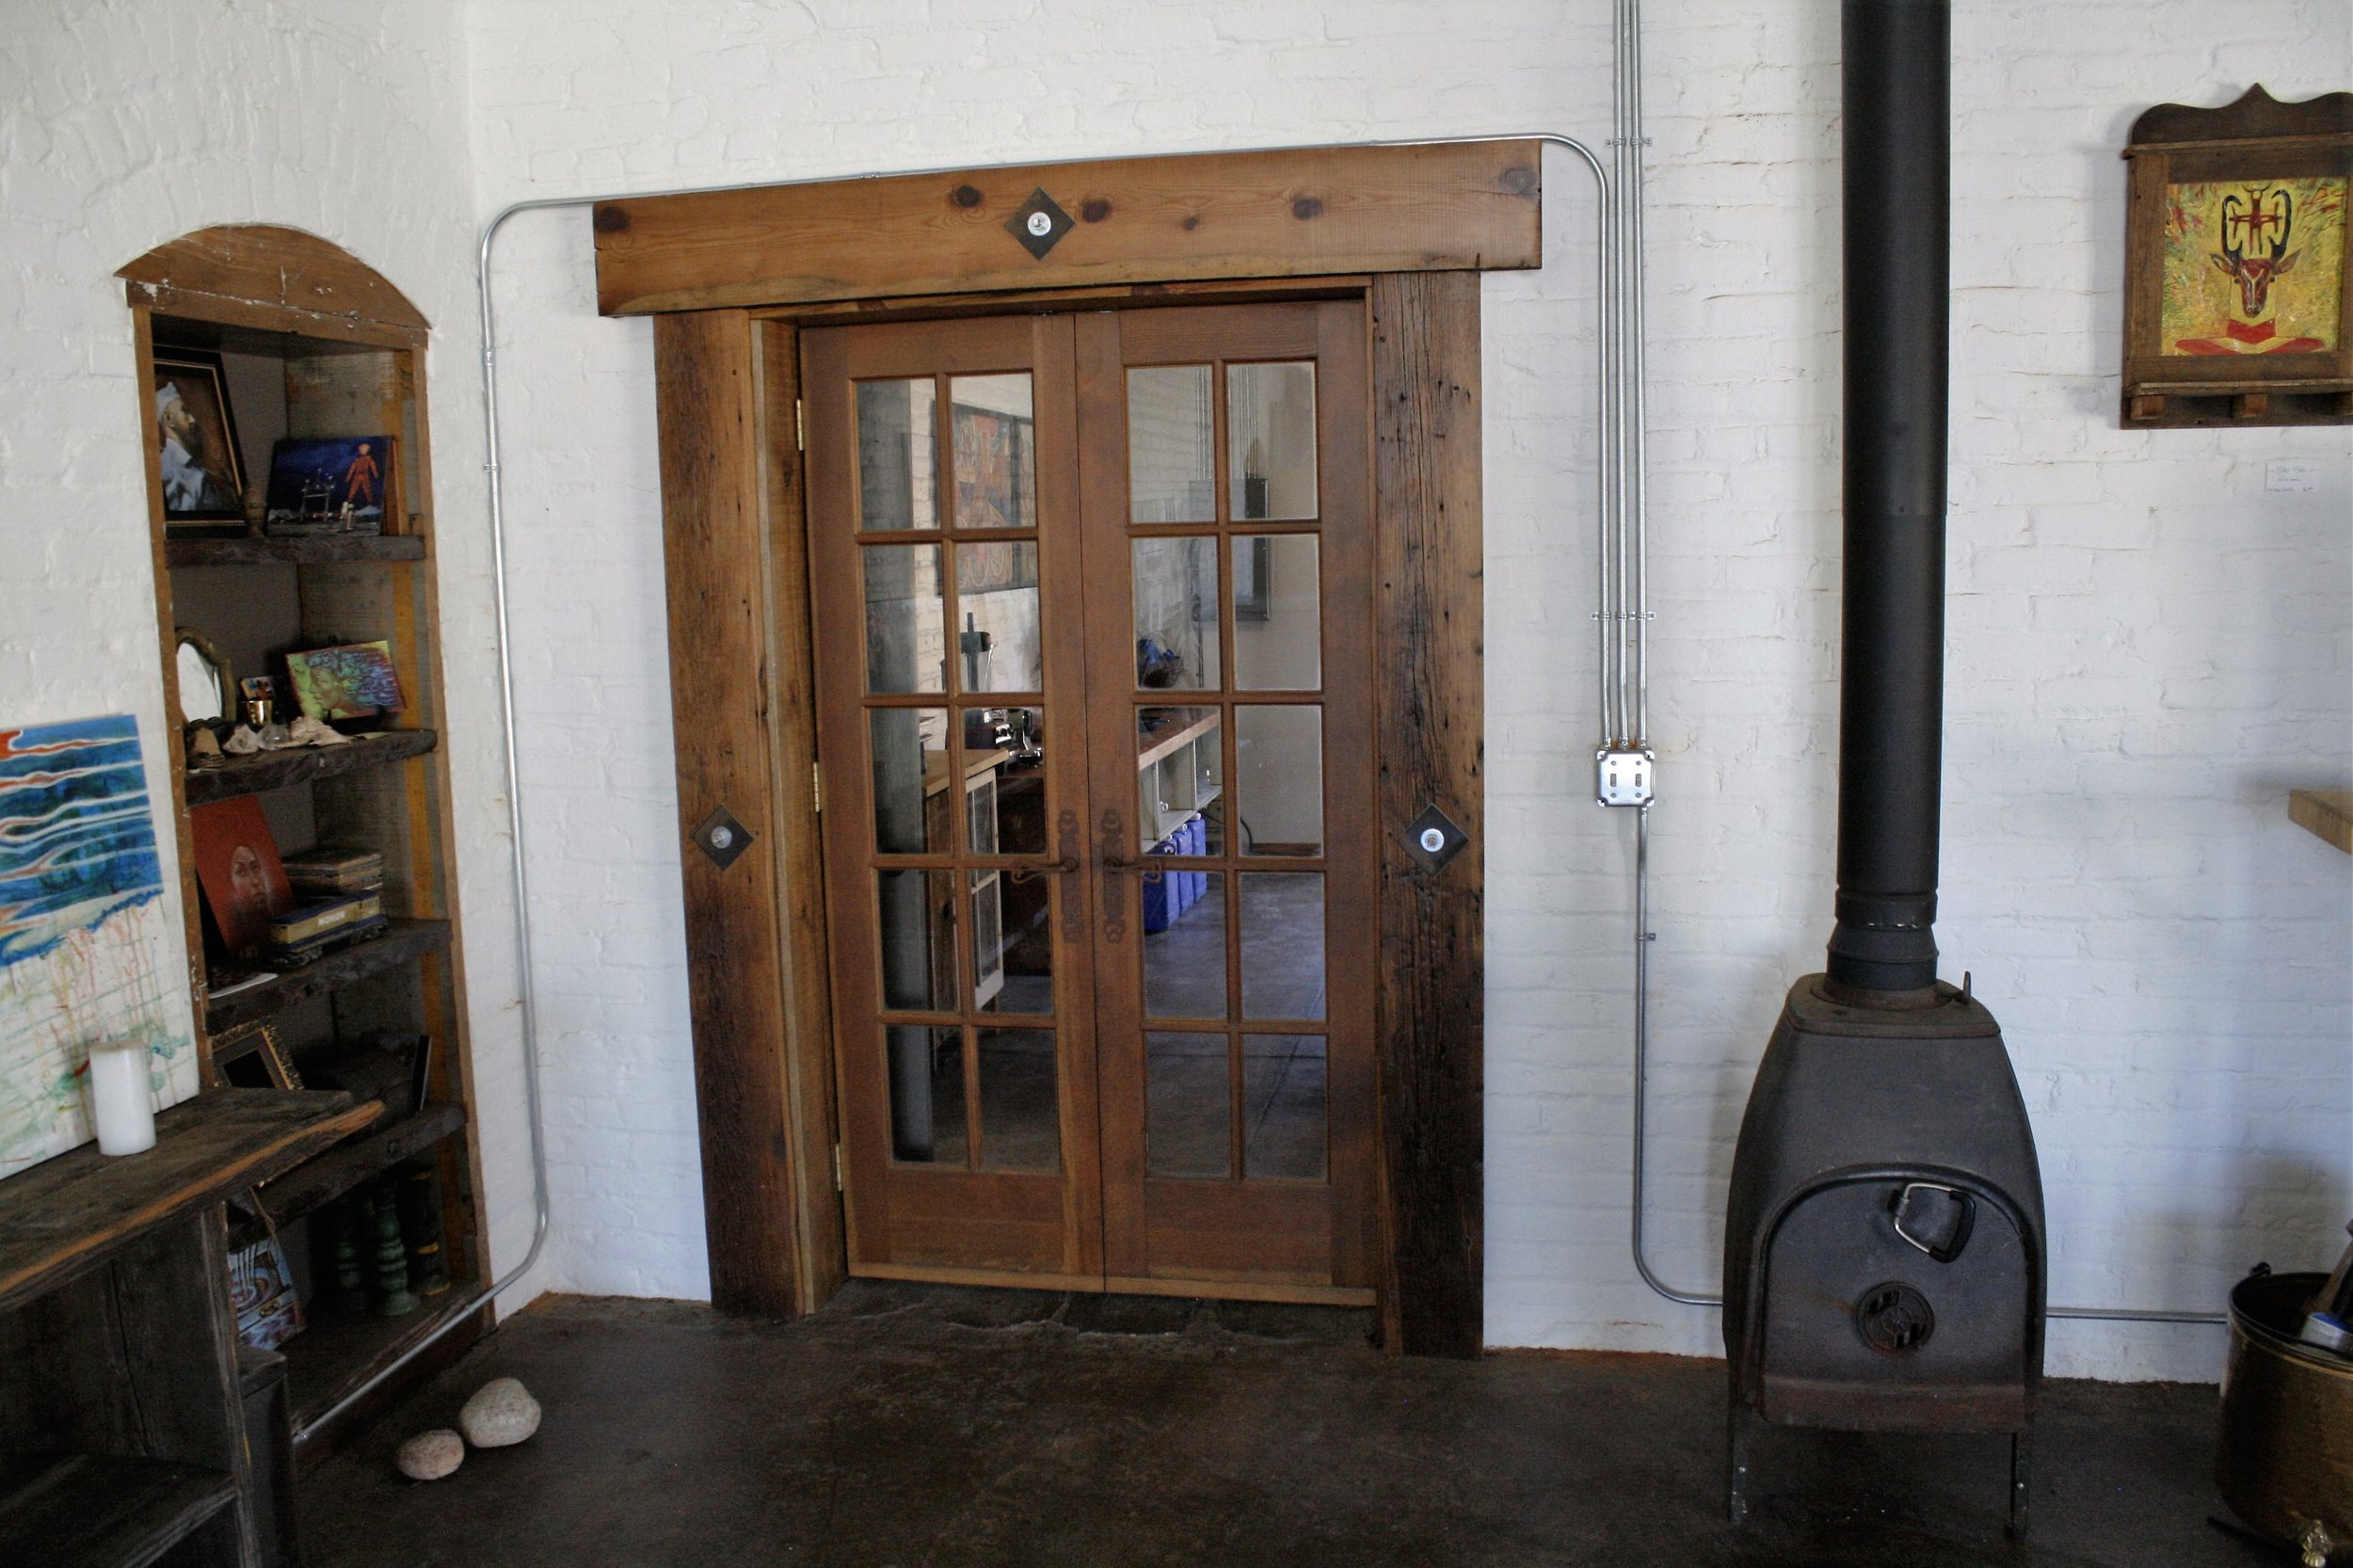 Custom made french doors, 2x8 reclaimed trim, wood stove install and inset bookshelf